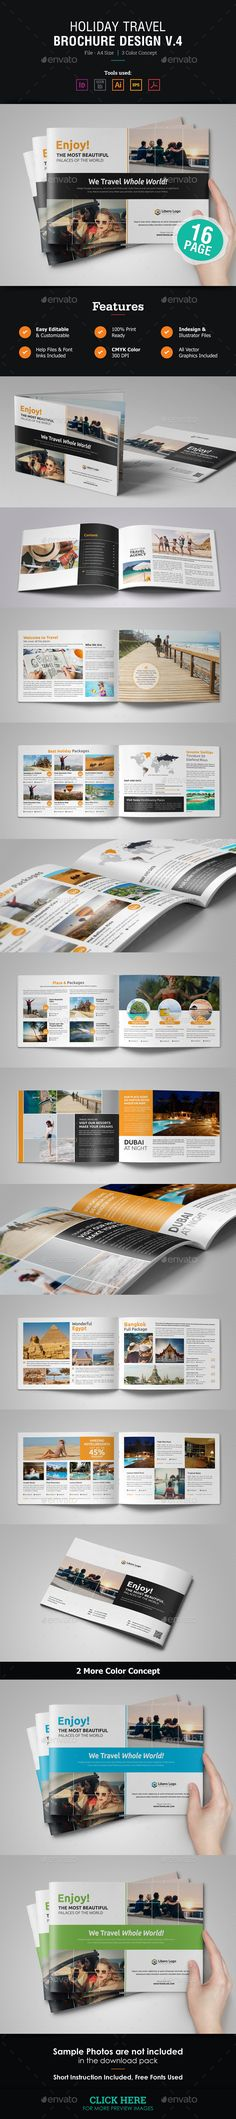 Holiday Travel Brochure Design v4